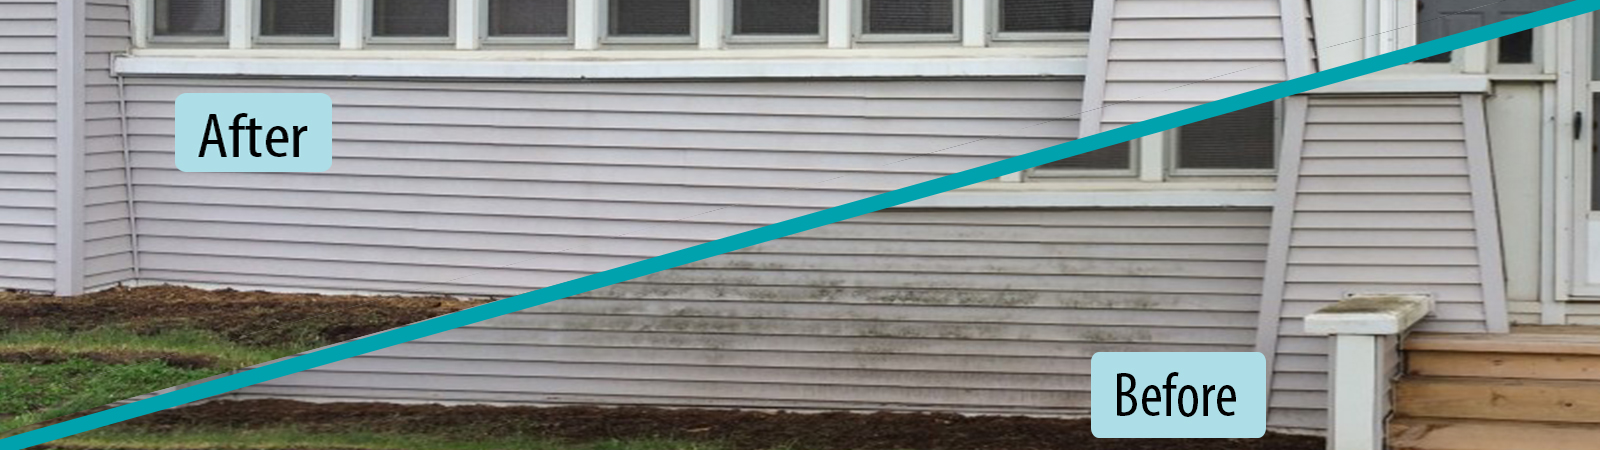 house washing by roof cleaner in grand rapids, michigan removes dirt and algae form vinyl siding and other types of exterior house finishes